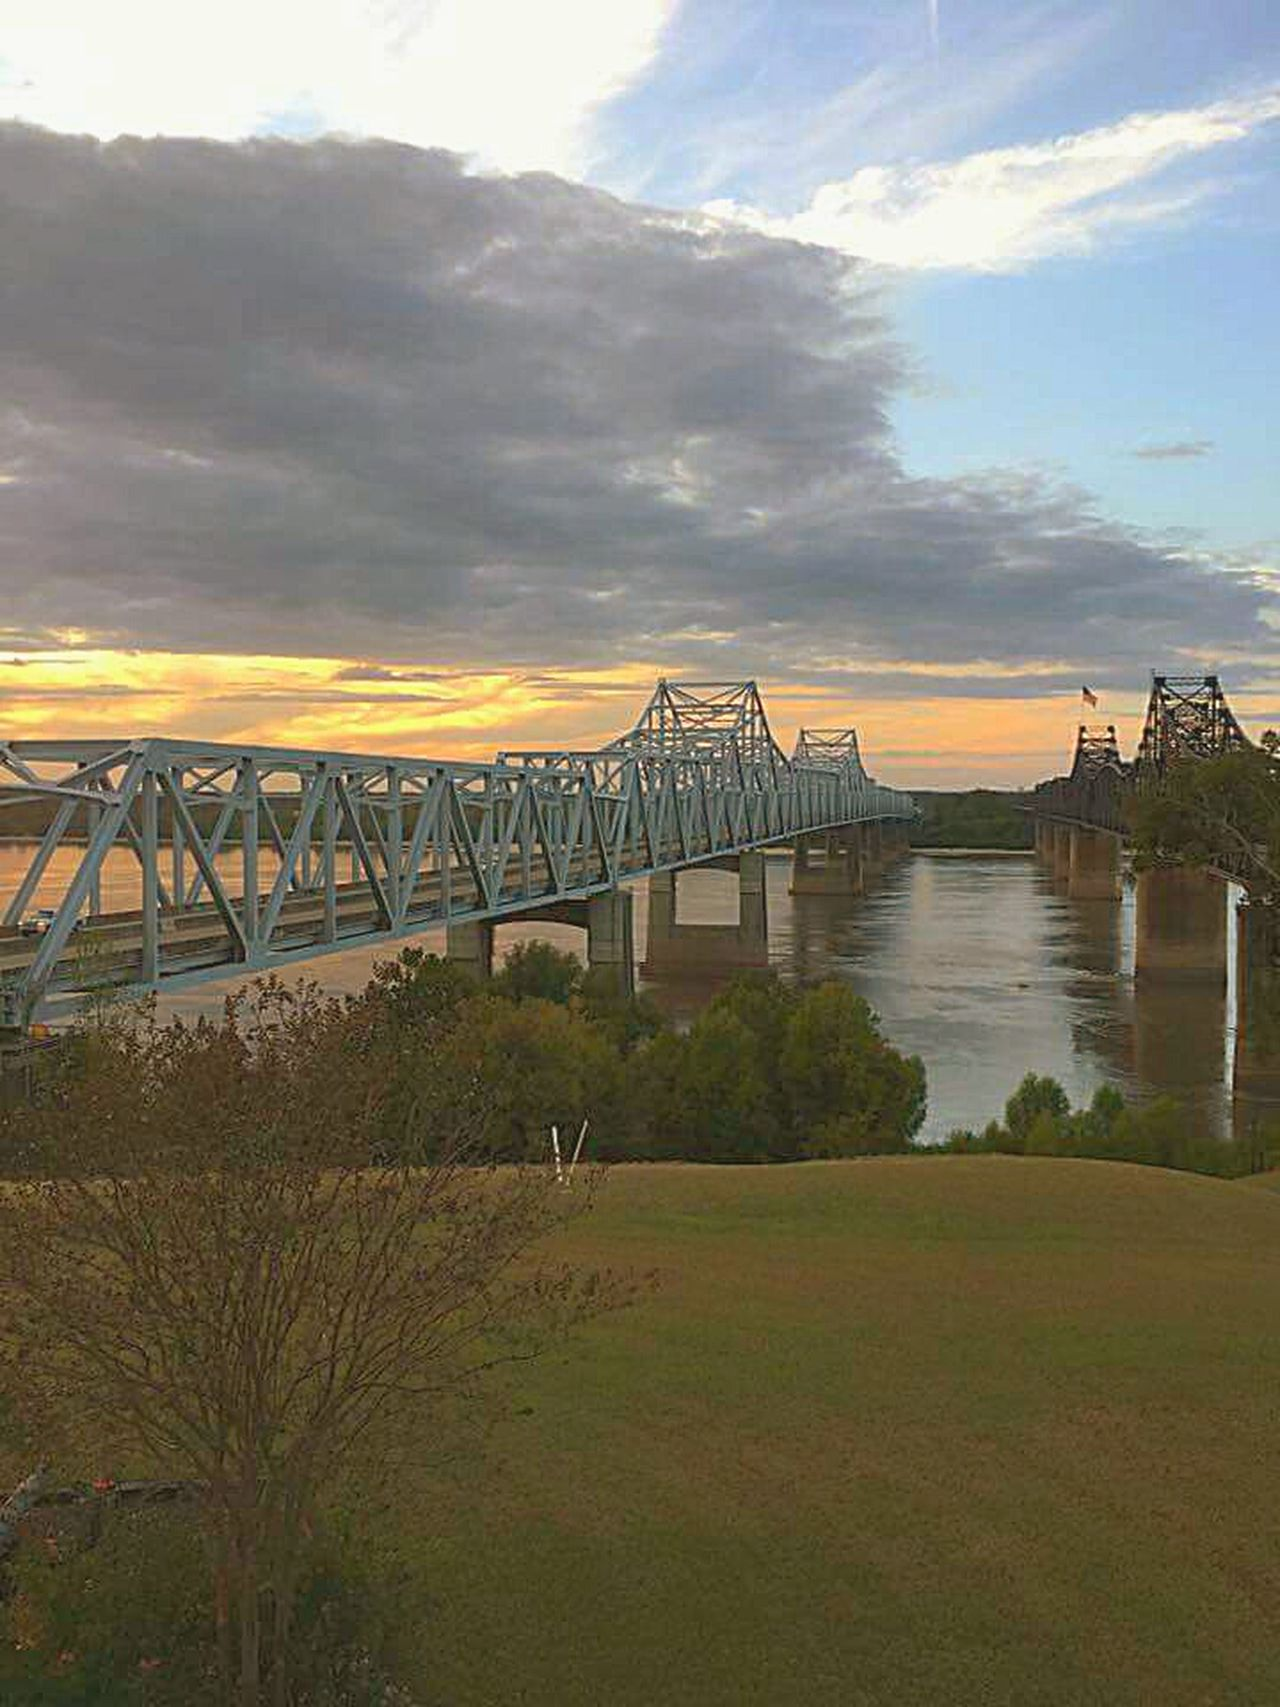 Mississippi River Bridge Architecture Sky Water Outdoors River Flowing Water Bridge - Man Made Structure Sunset Mississippi River Where I Live Landscape Travel Destinations Tourism Built Structure Old Bridge Famous Places Landmark Steel Structure  Mississippi